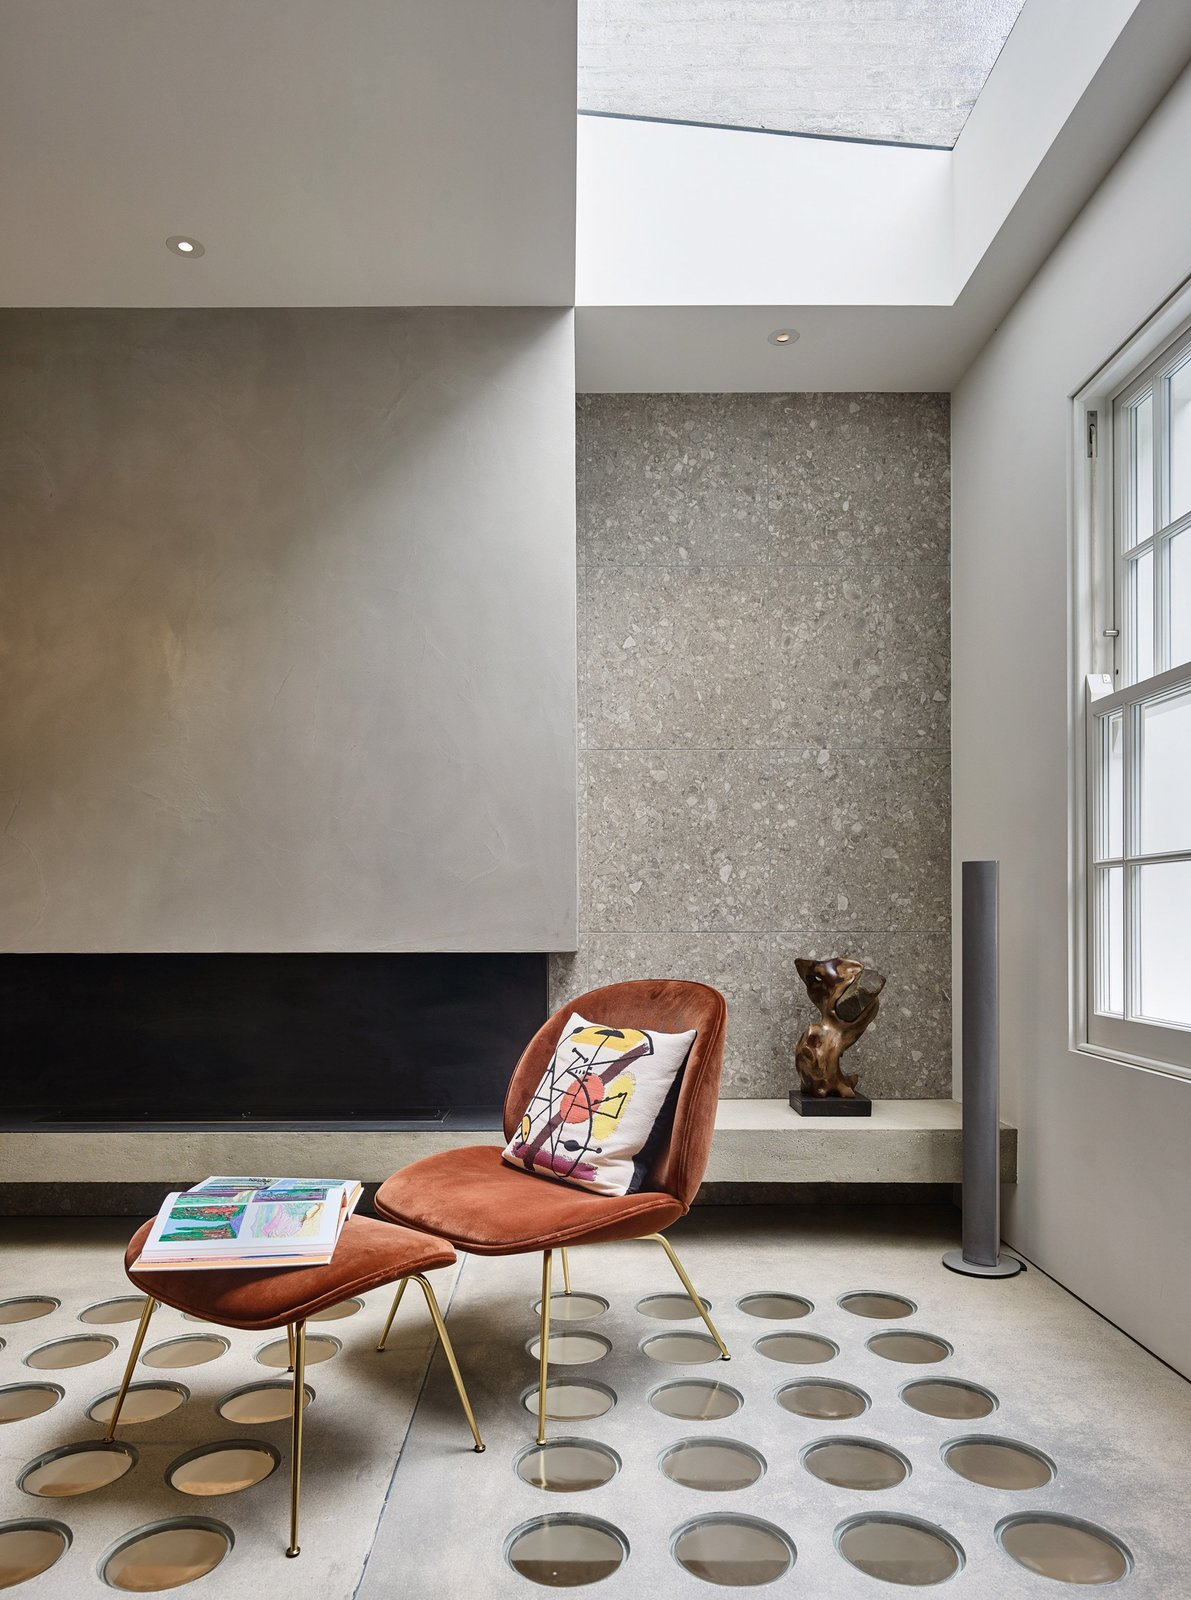 Living Room and Chair  Photo 7 of 12 in Transparent Perforated Circles Bring Light and Movement to This London Terrace House